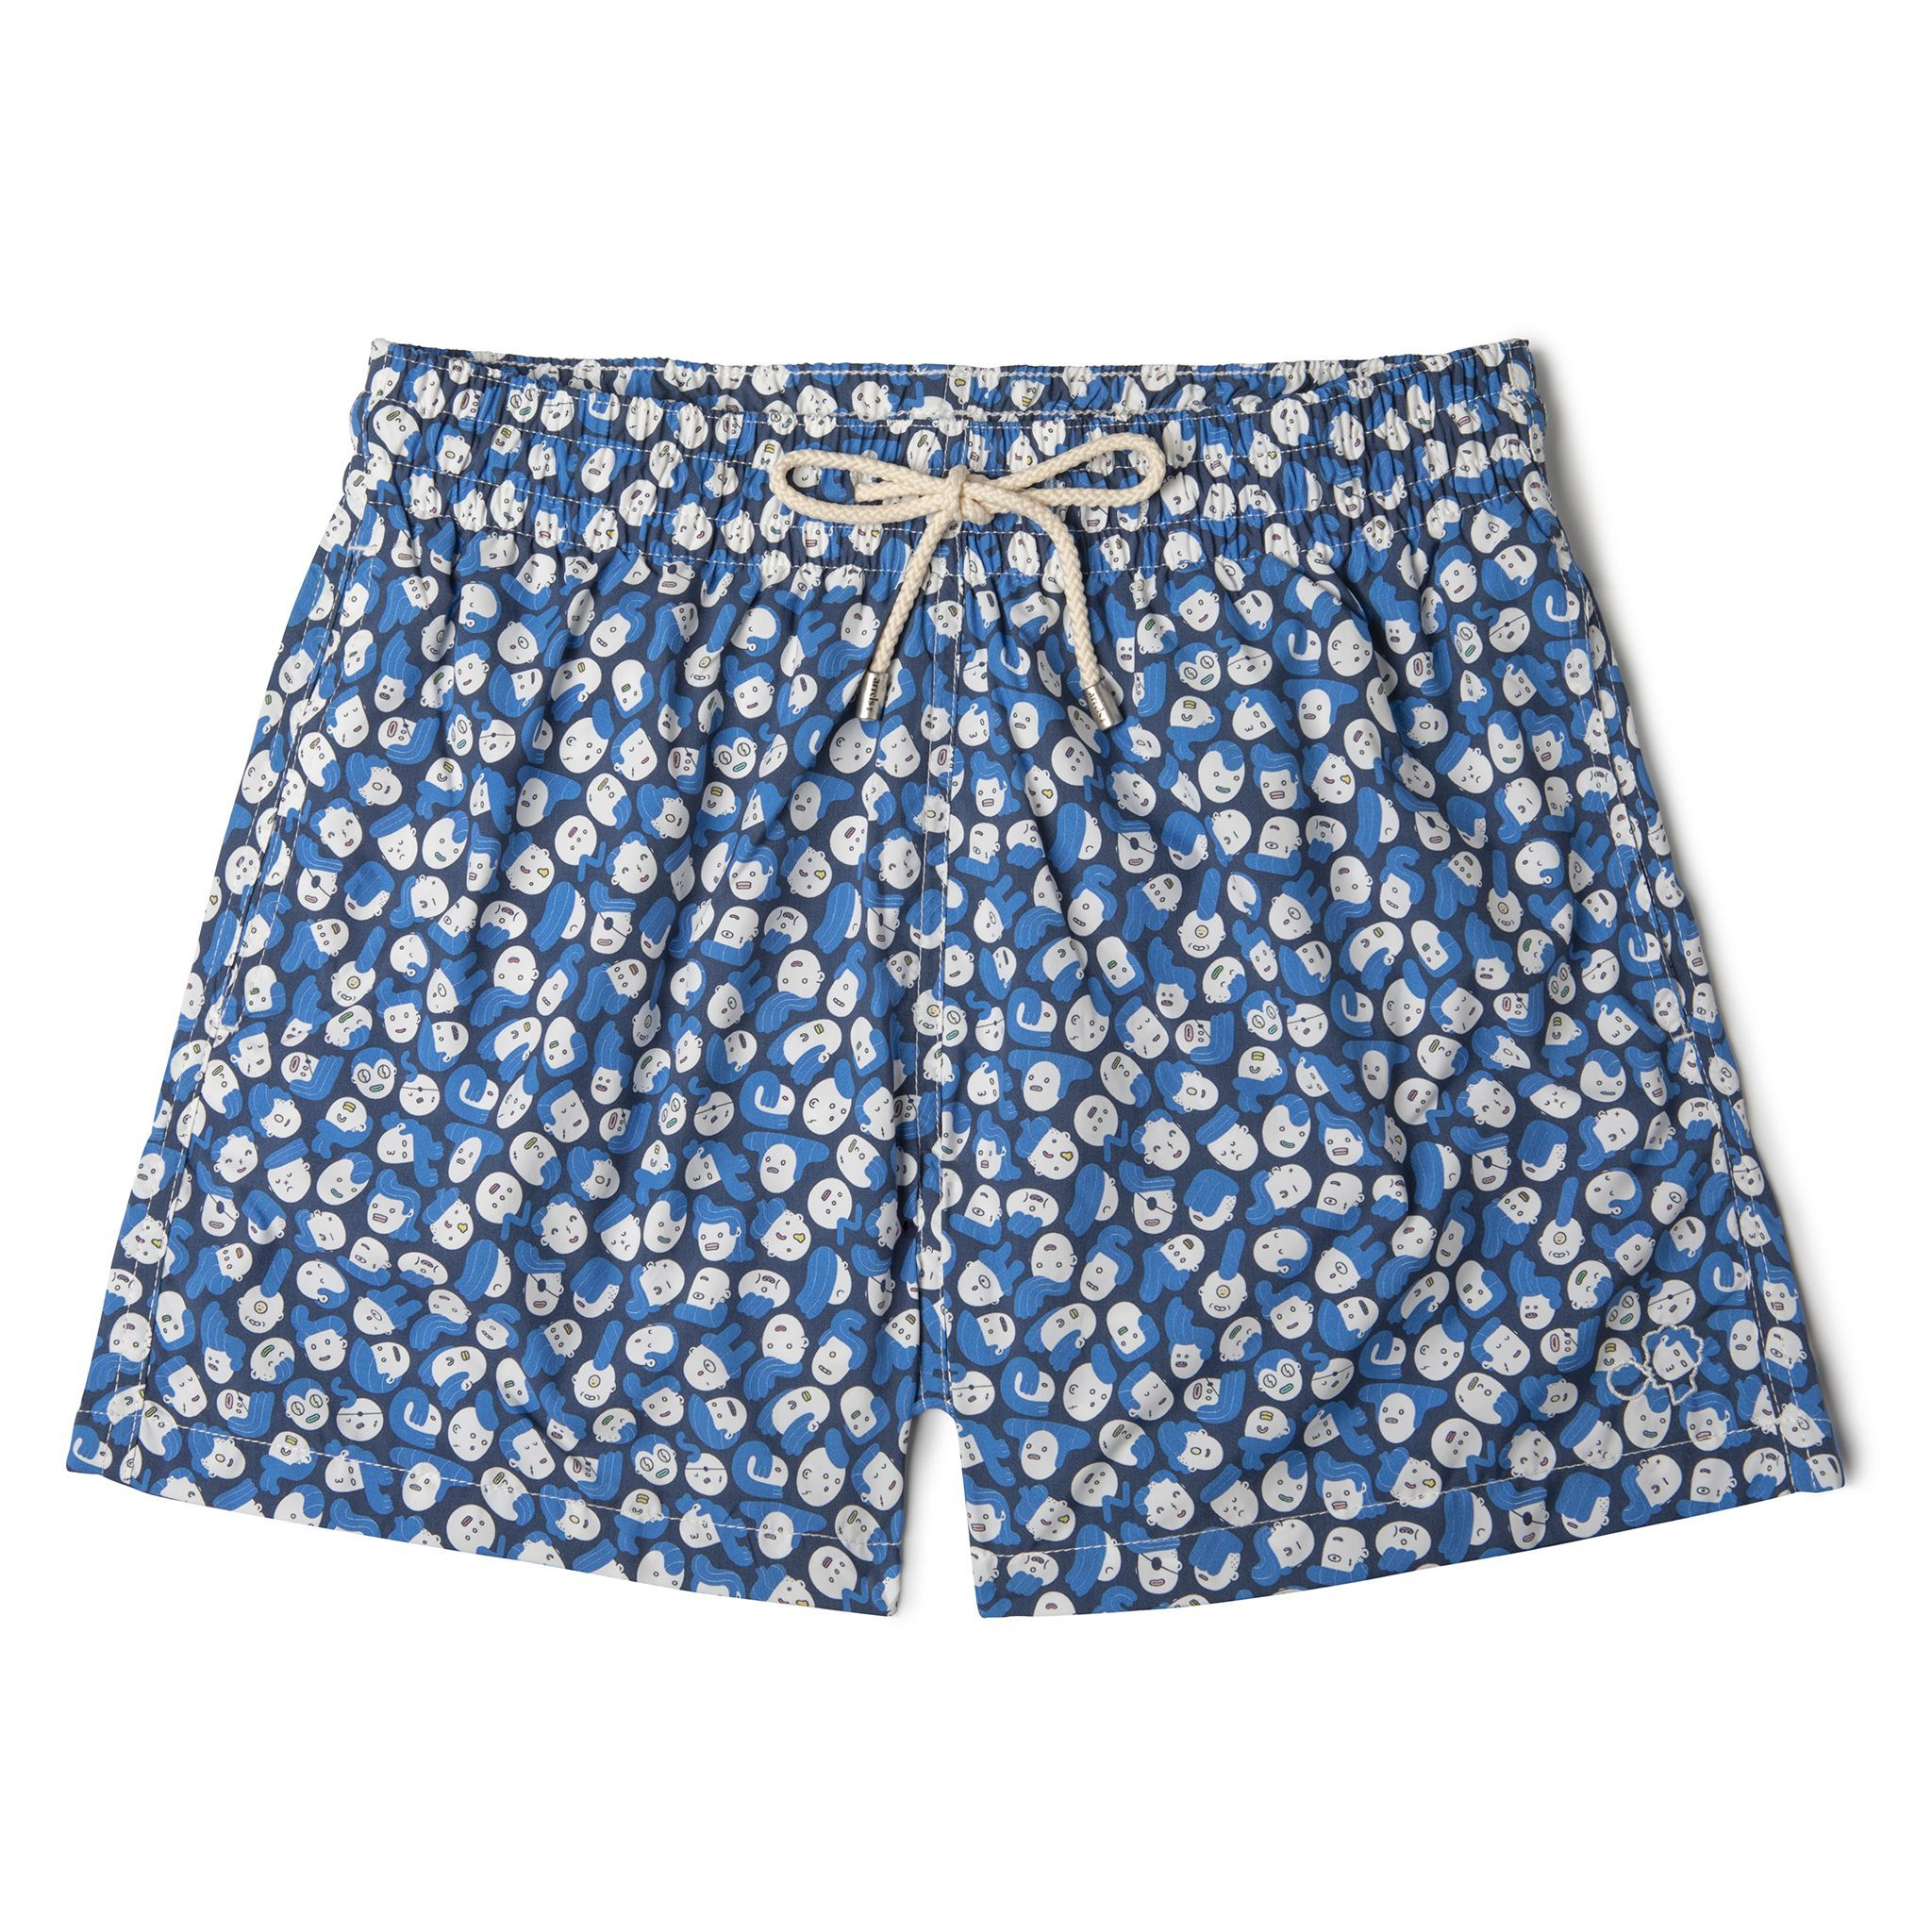 Short-Length Swim Shorts Blue Faces